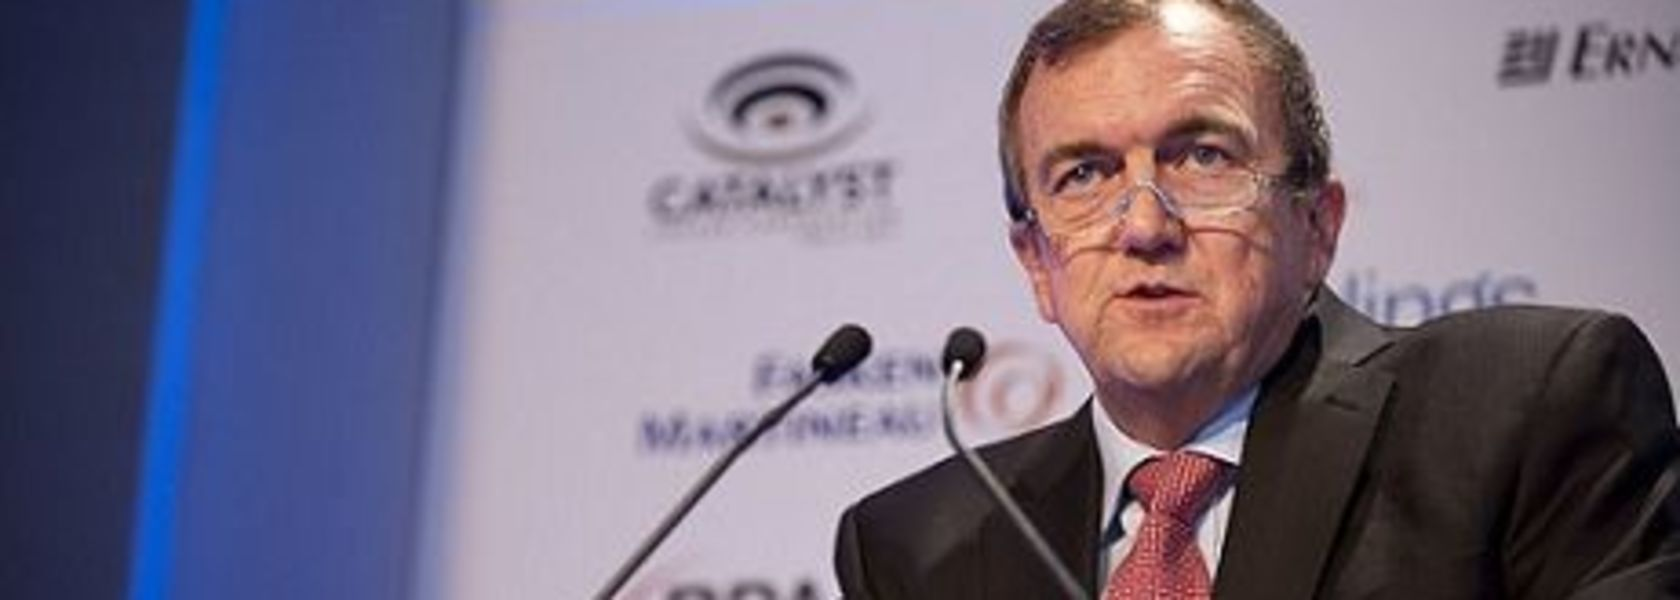 Gold industry shake up not finished, says Bristow